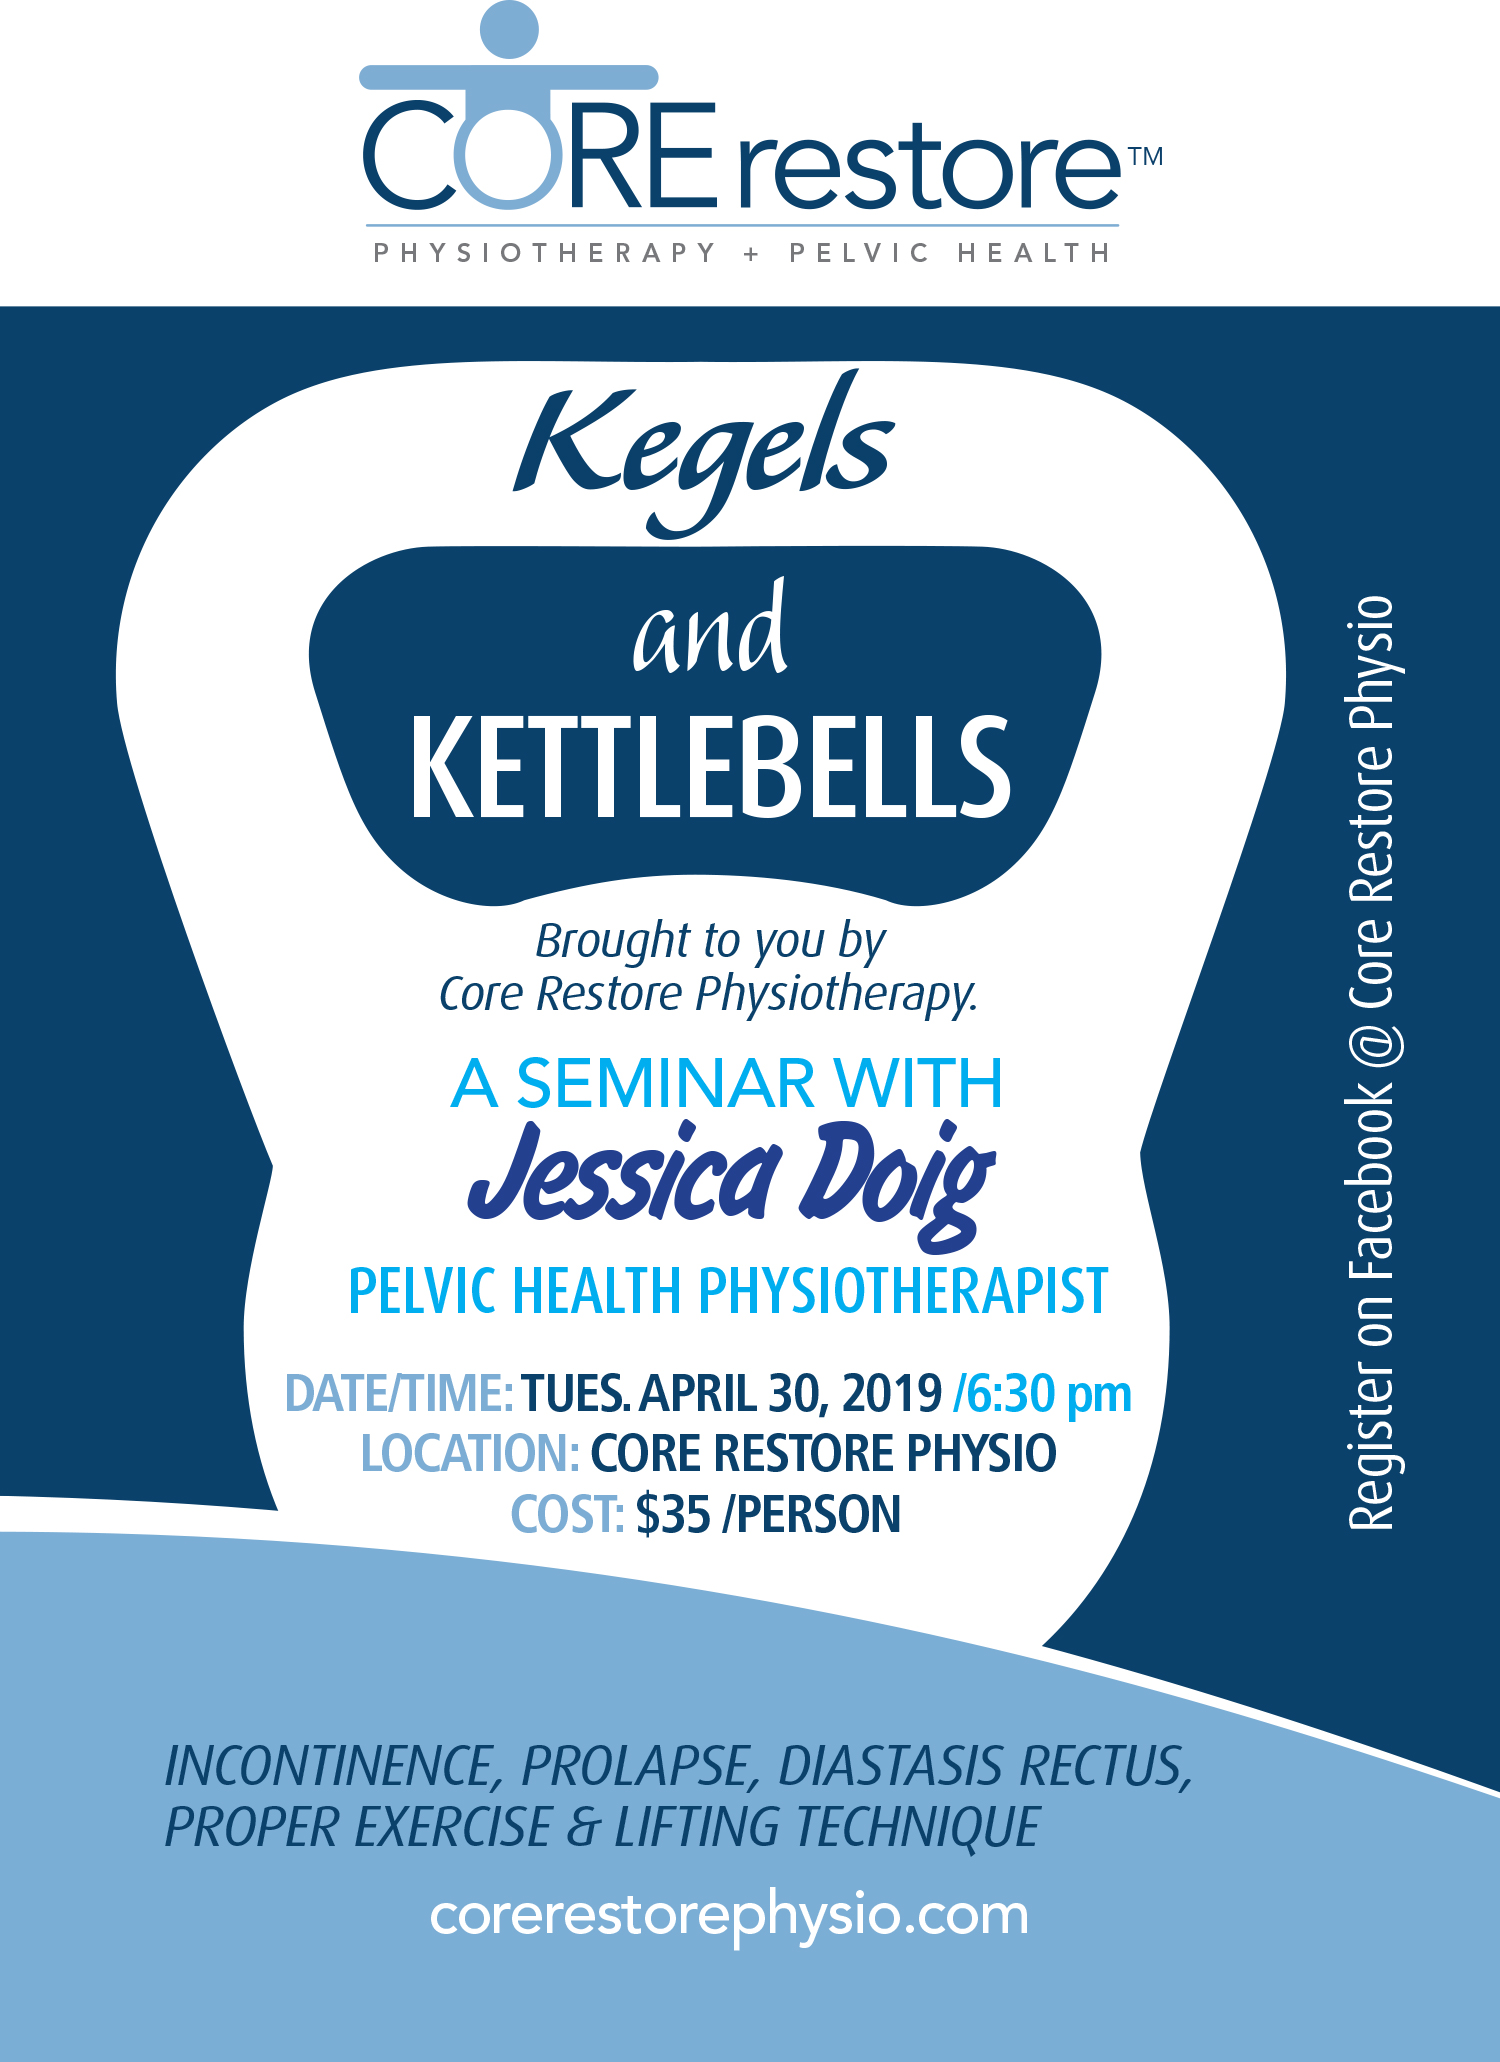 Kegels & Kettlebells - A Seminar with Jessica Doig, Pelvic Health Physiotherapist.Register on Facebook or at Core Restore Physio.Date/Time:April 30, 2019 from 6:30pm to 8:00pmCost: $35Location:Core Restore Physiotherapy205467 County Road 109 (Inside Headwaters Racquet Club)Amaranth (Orangeville), ONL9W 0V1